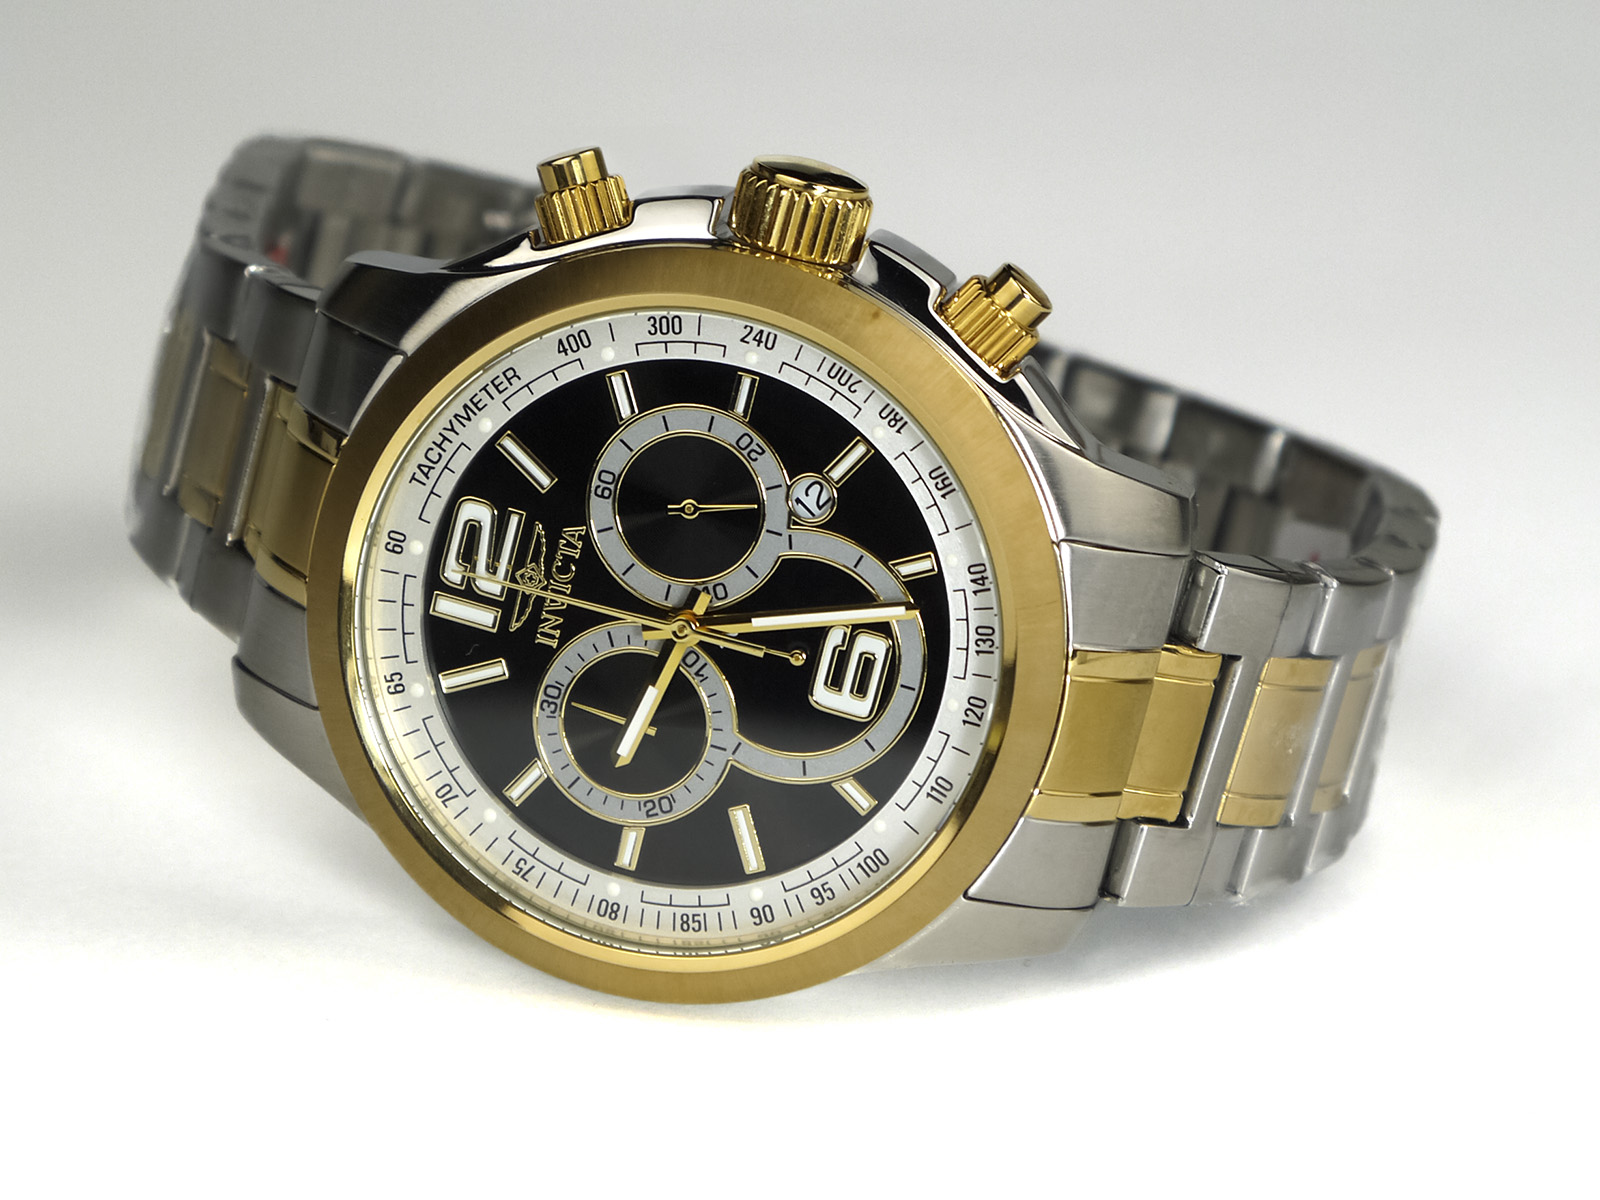 Invicta 0080 II Collection Chronograph Two-Tone Stainless Steel Watch